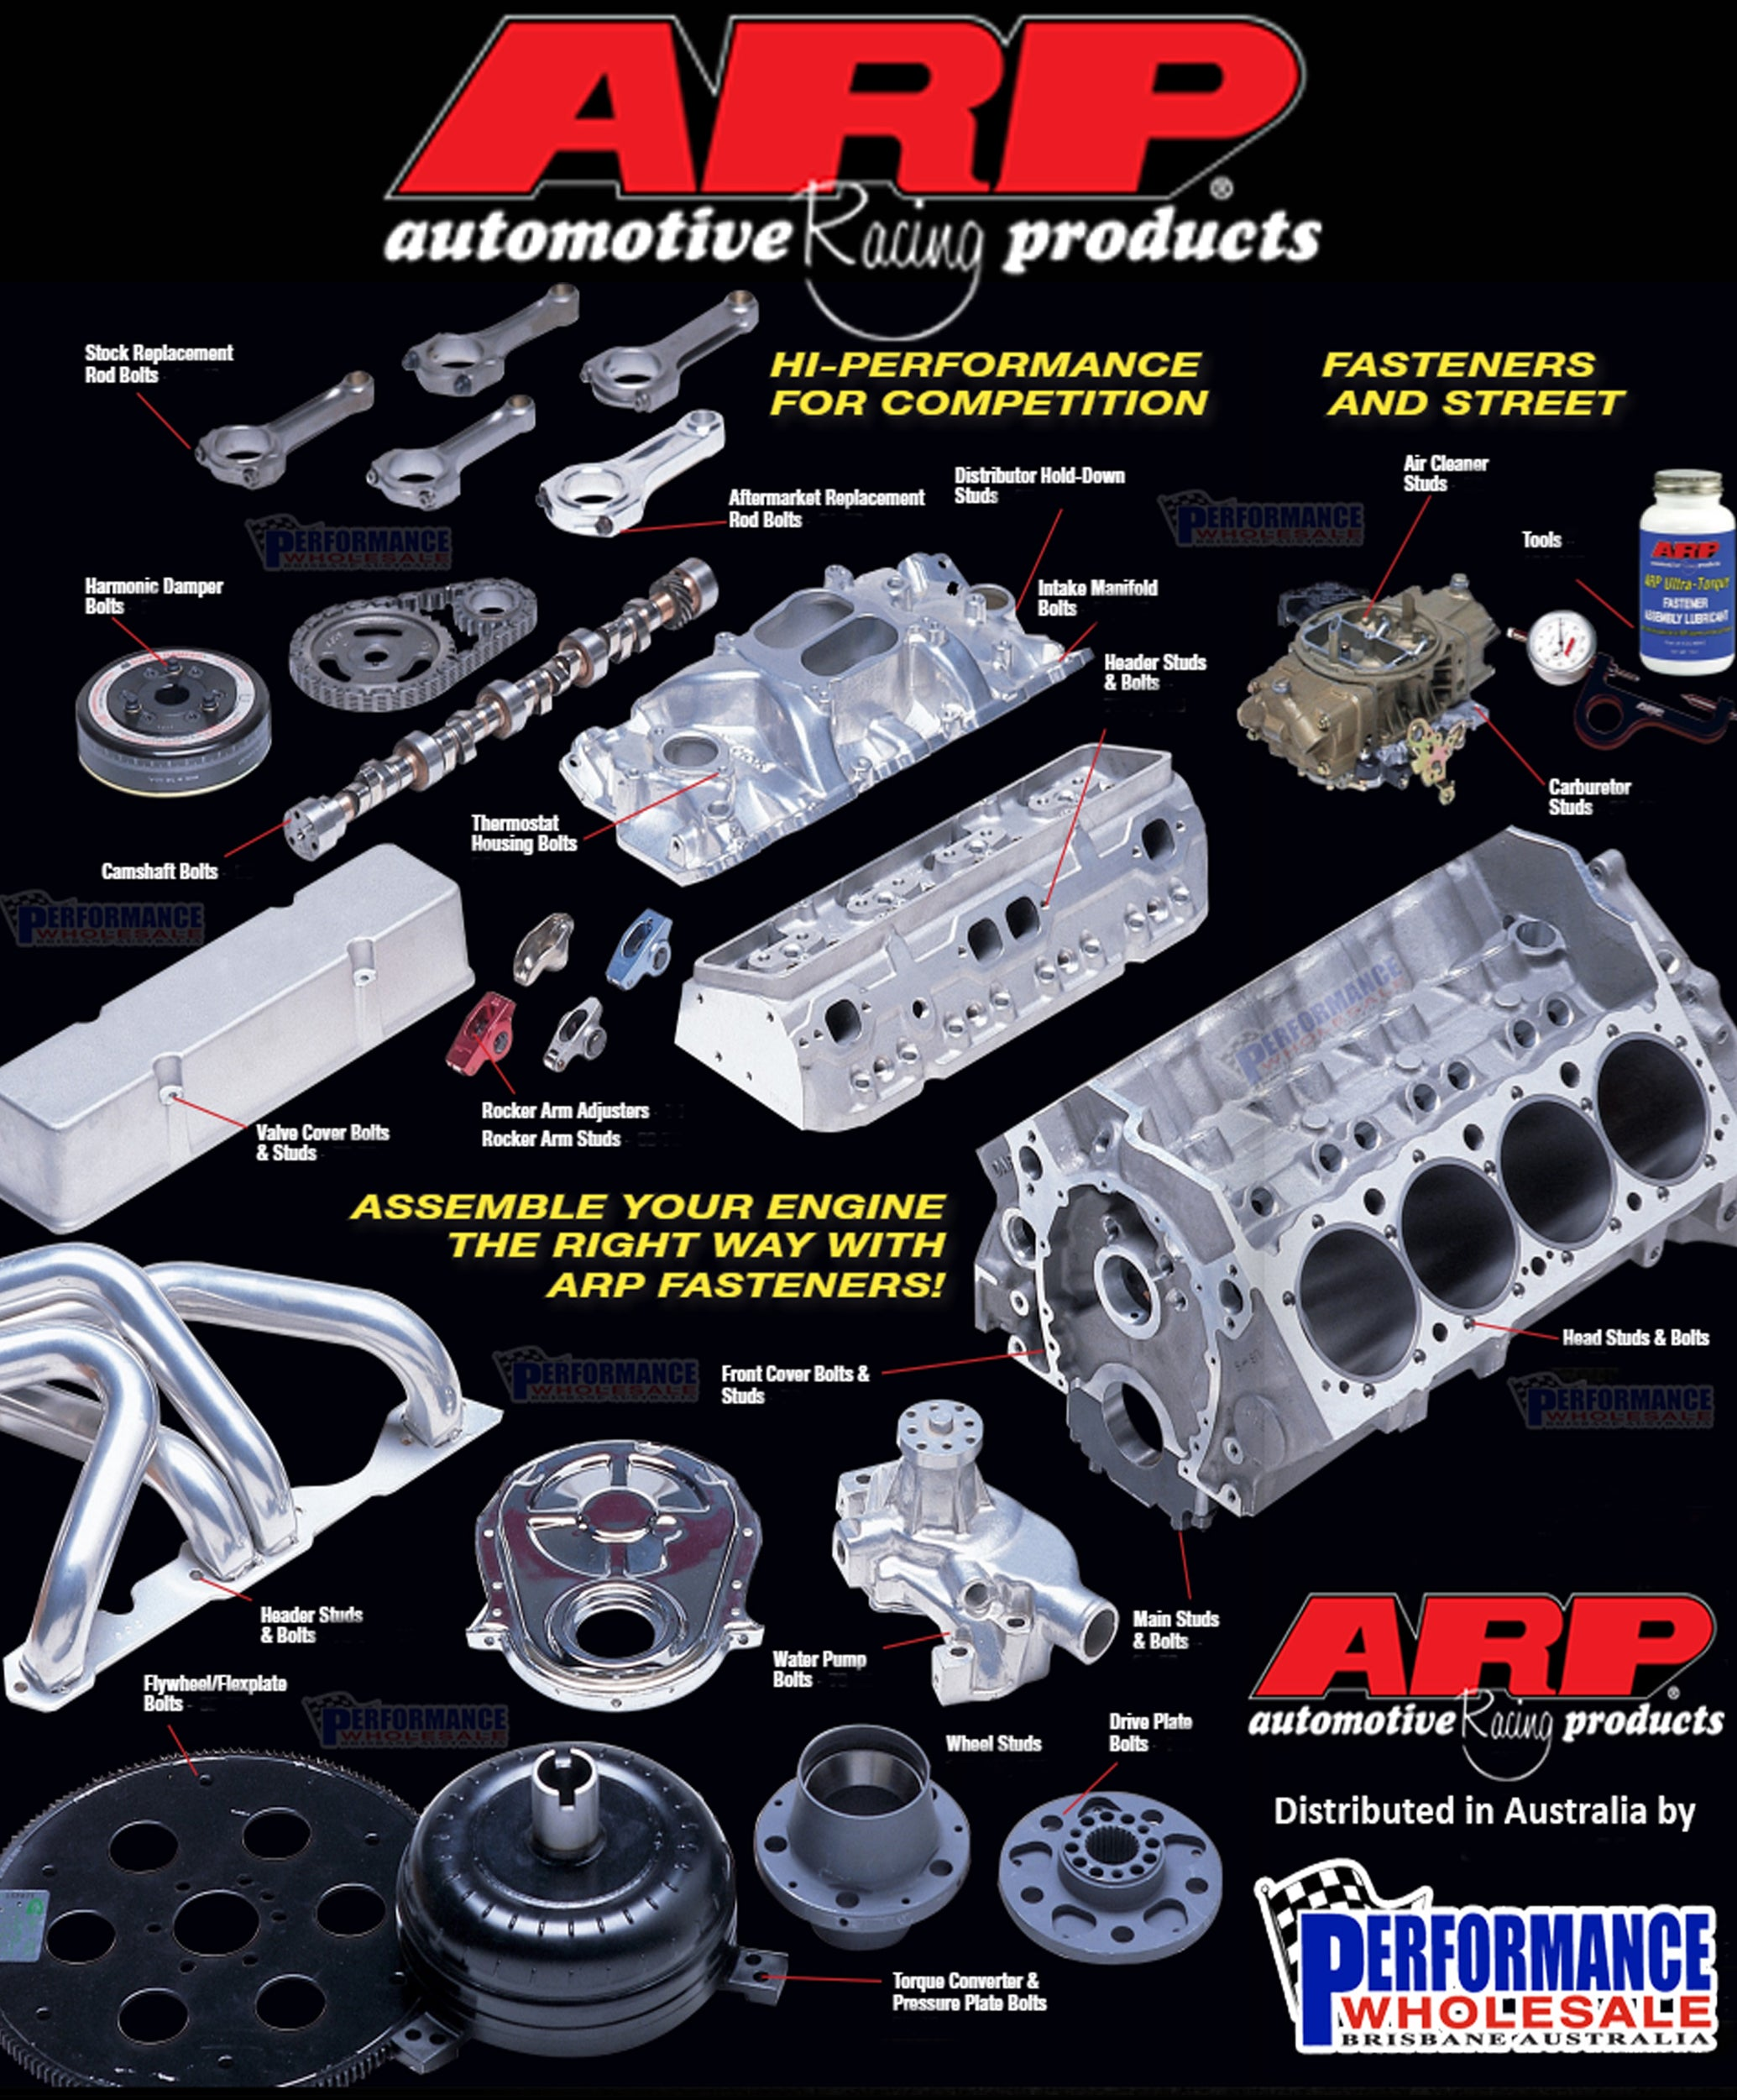 ARP ~ Automotive Racing Products